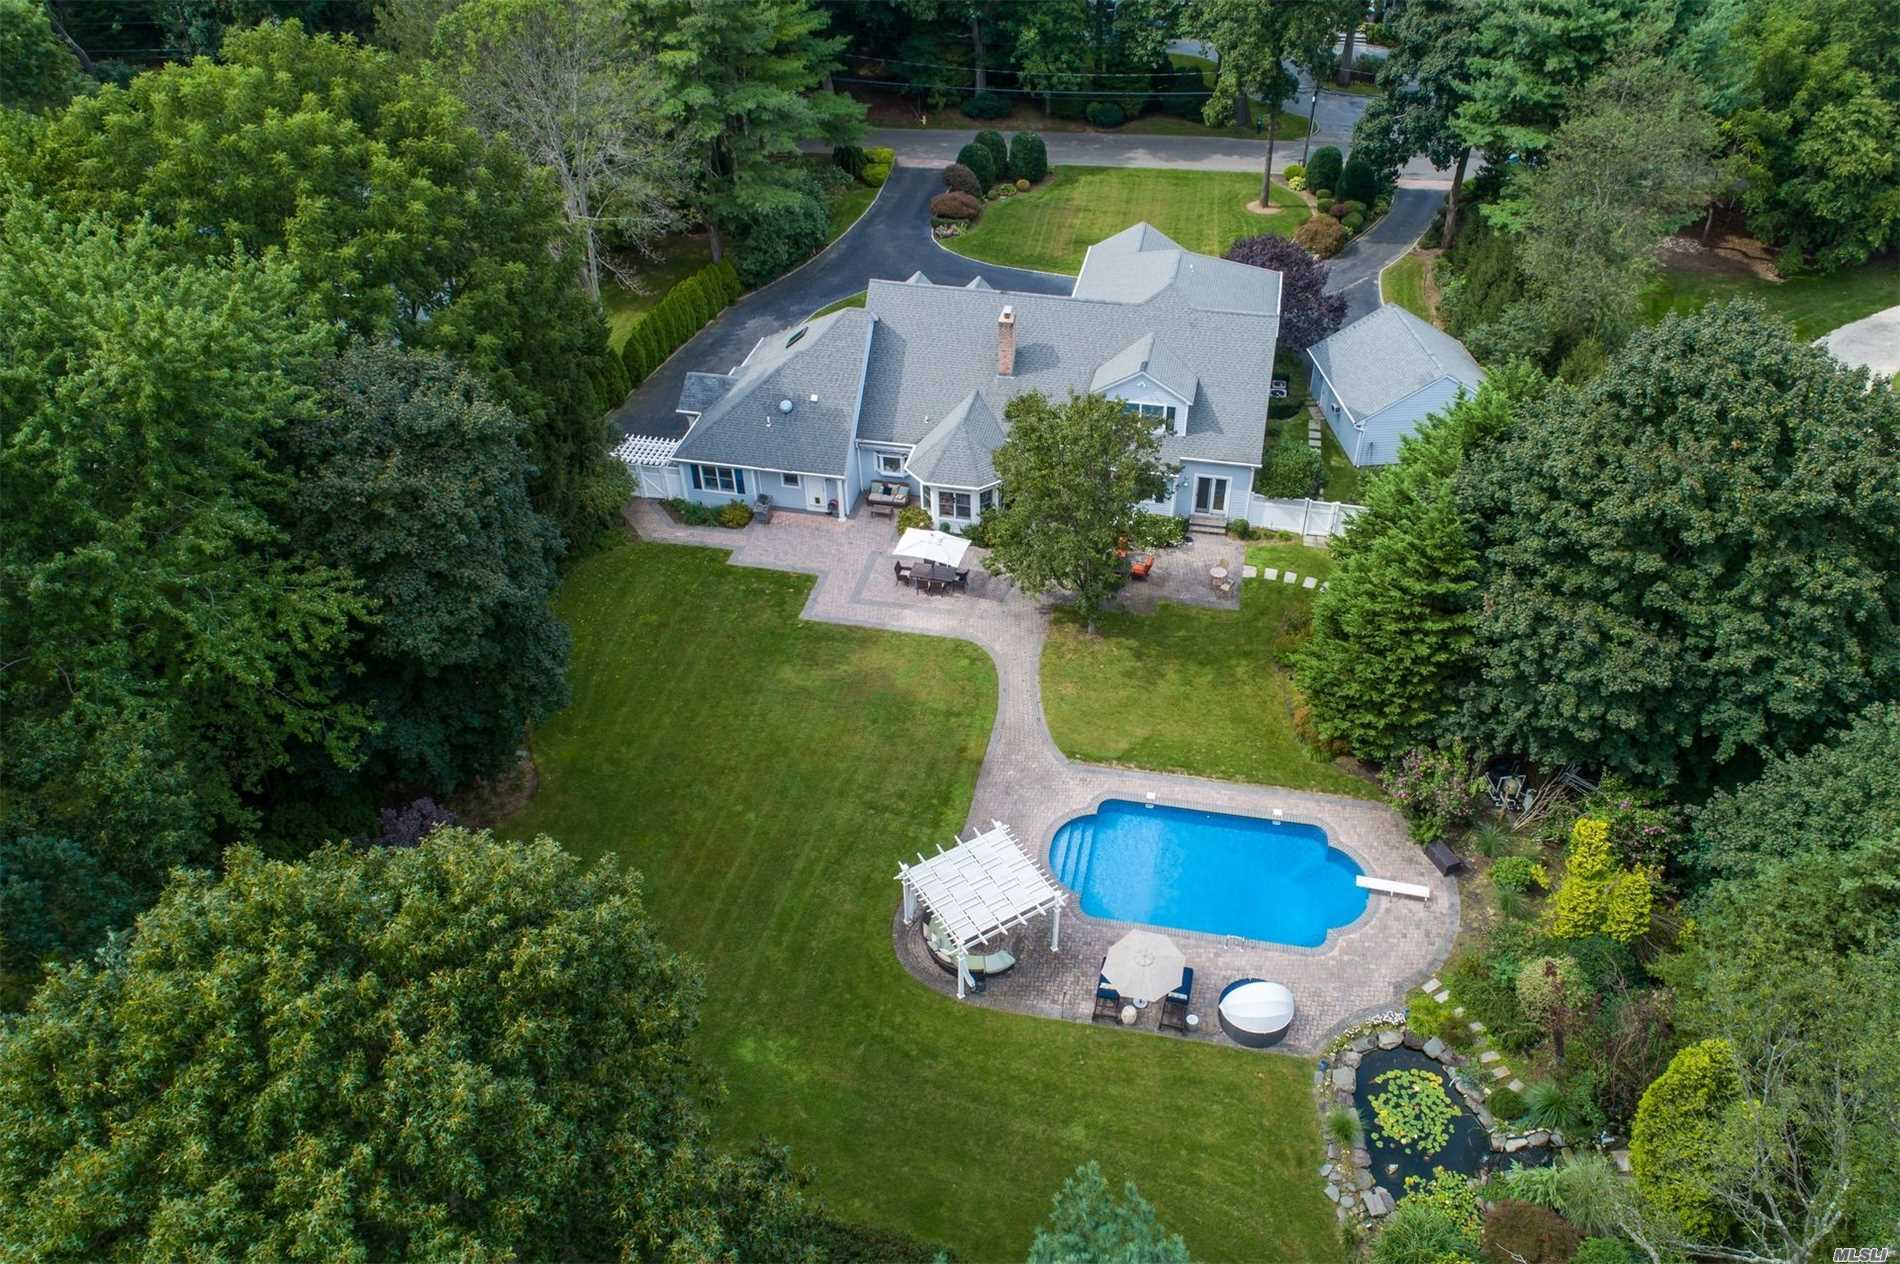 Picturesque Colonial w/ front porch set back on a manicured 2 acres in one of the most sought-after locations in Cold Spring Harbor. Impressive 2-story foyer & 23'x14' eat-in kitchen w/ sun-filled breakfast area. 1st fl includes separate guest wing plus master ensuite w/walk-in closet, sitting rm & French doors to yard. Enjoy every day living in backyard oasis, saltwater pool, Koi pond, expansive patio & sweeping level lawn. Convenient to village, train & Eagle Dock Beach w/ mooring rgts (fee).